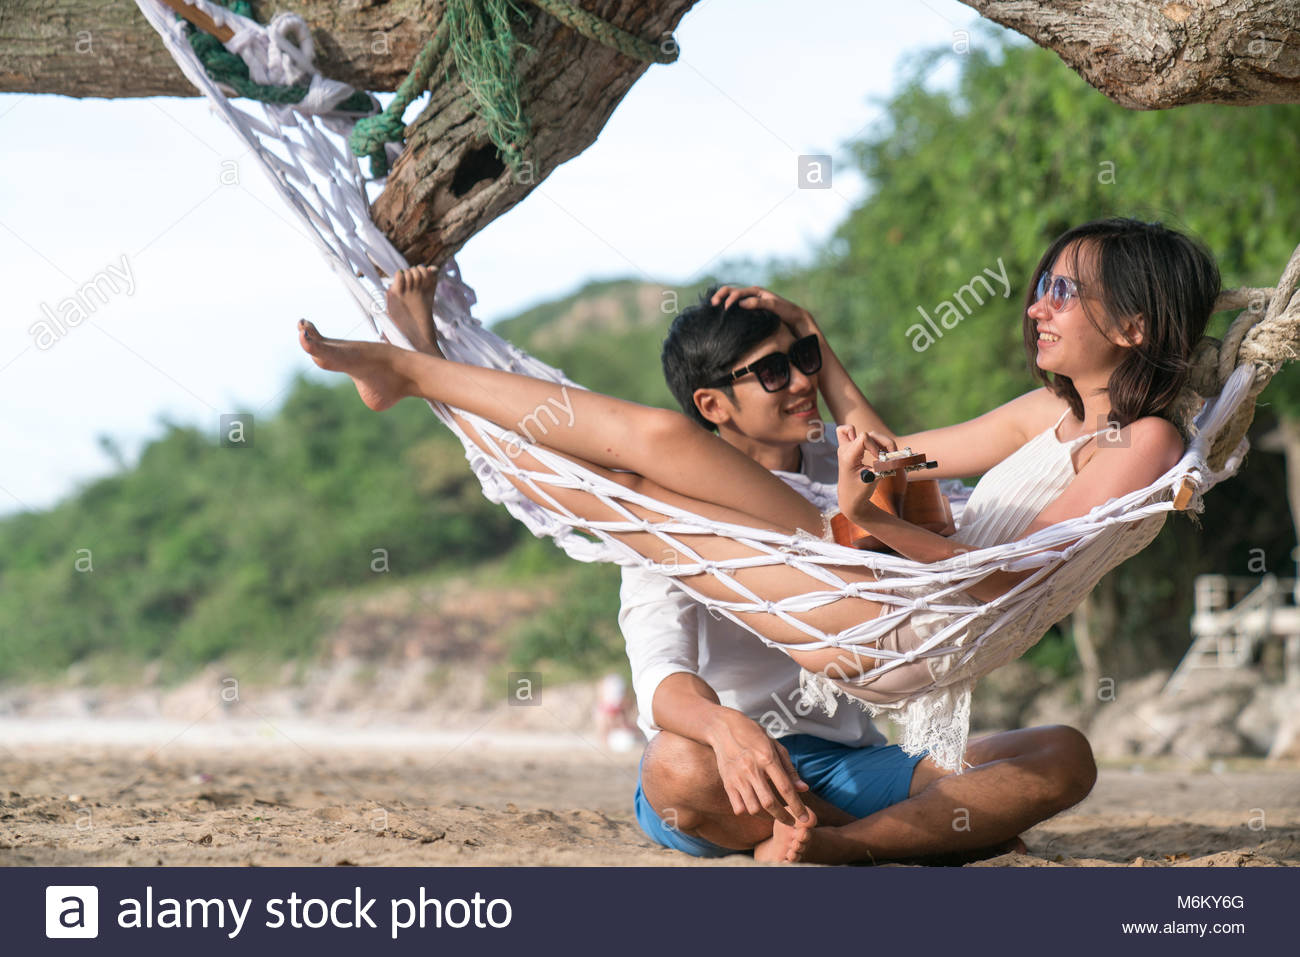 couple lover enjoy honeymoon and long vacation on the sea beach, siiting on the swing together relax and confortable, Stock Photo